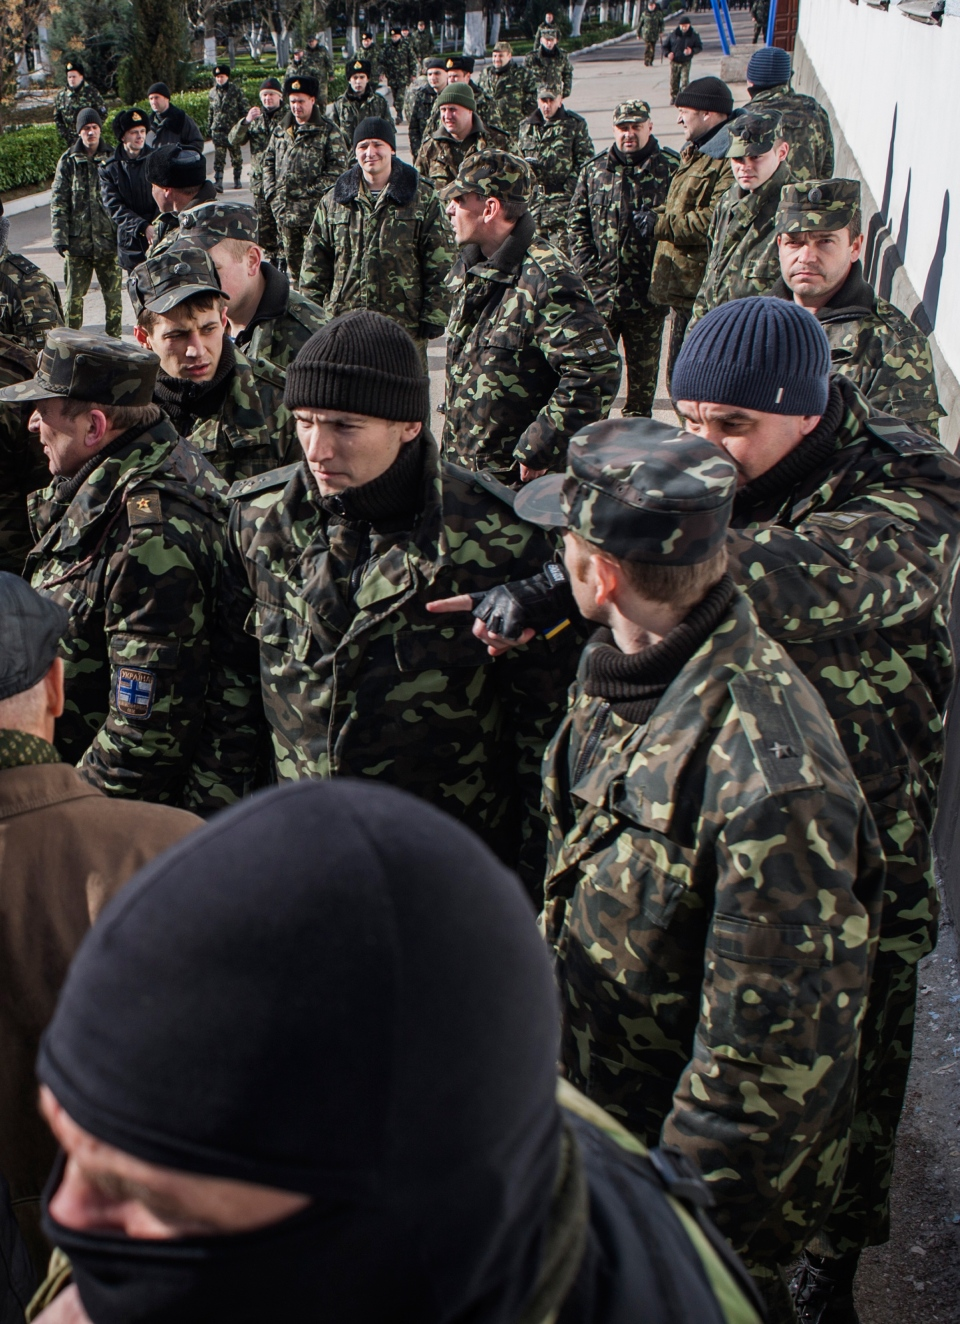 Ukrainian servicemen stand, with a Crimean self-defense forces member in front, outside the Ukrainian navy headquarters in Sevastopol, Crimea, Wednesday, March 19, 2014. (AP / Andrew Lubimov)